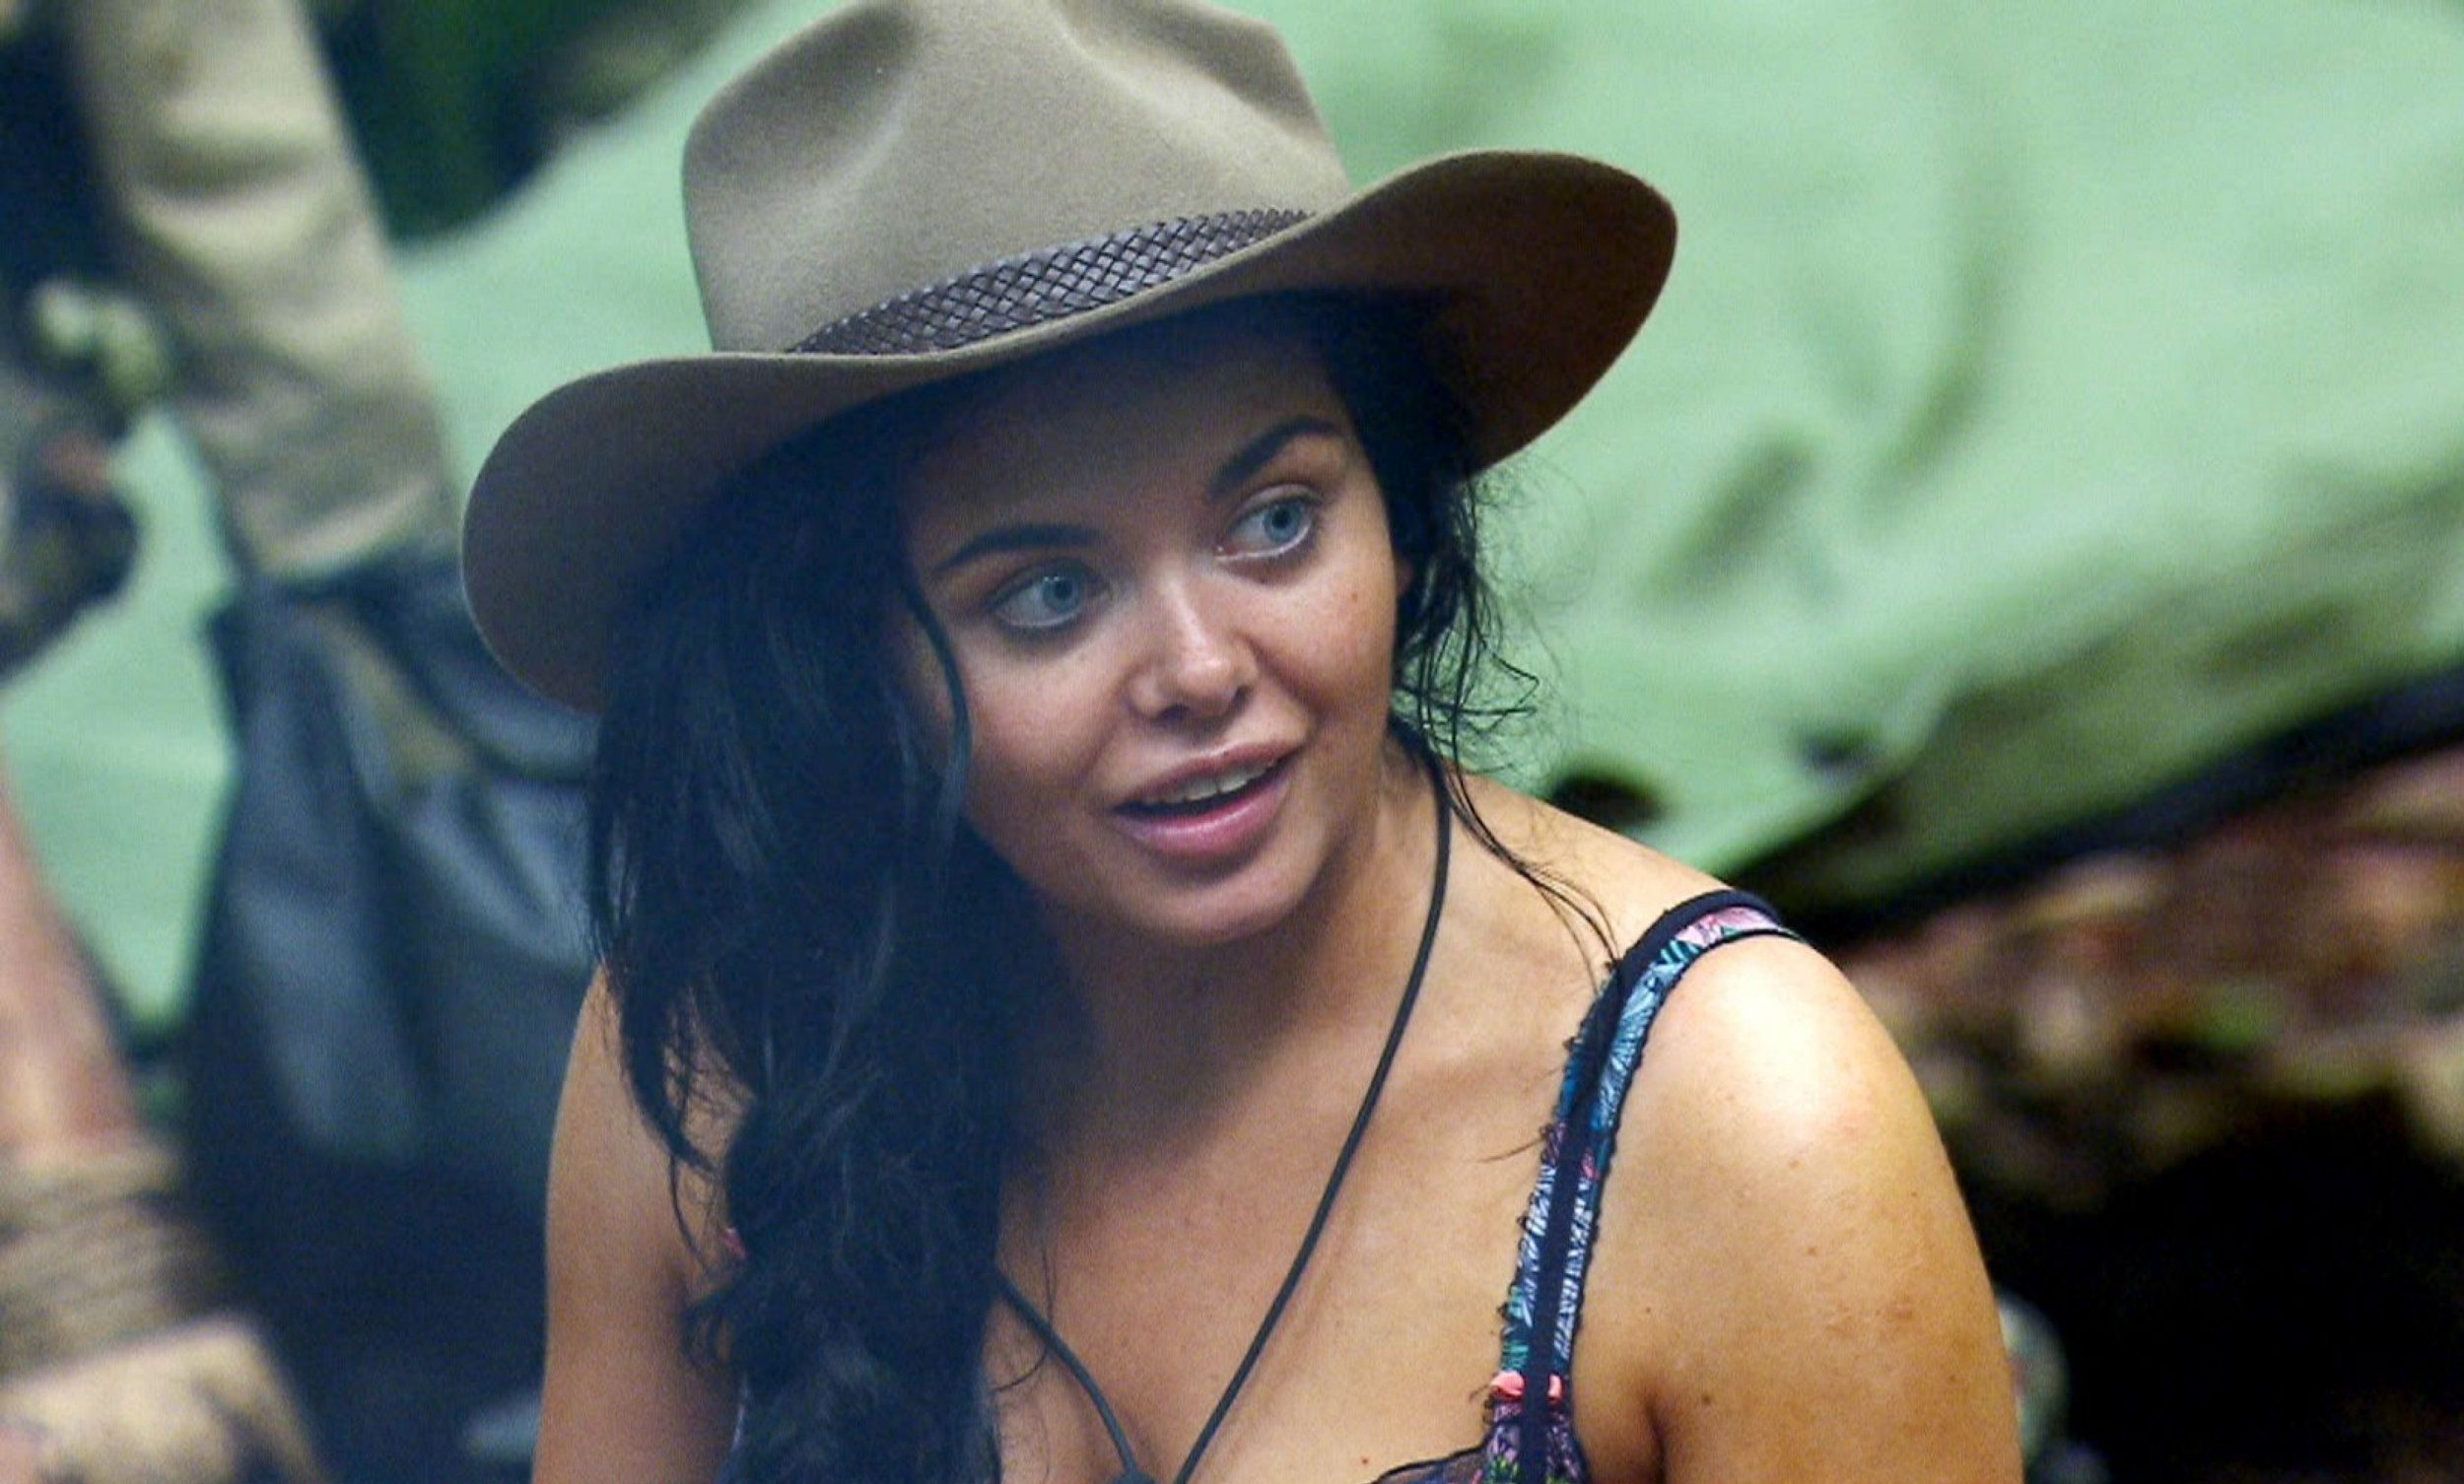 ***EMBARGO, NOT TO BE USED BEFORE 22:45, 13 Nov 2016 - EDITORIAL USE ONLY - NO MERCHANDISING*** Mandatory Credit: Photo by ITV/REX/Shutterstock (7431723dq) Celeb campers 1st morning - Scarlett Moffatt 'I'm a Celebrity...Get Me Out of Here!' TV Show, Australia - 13 Nov 2016